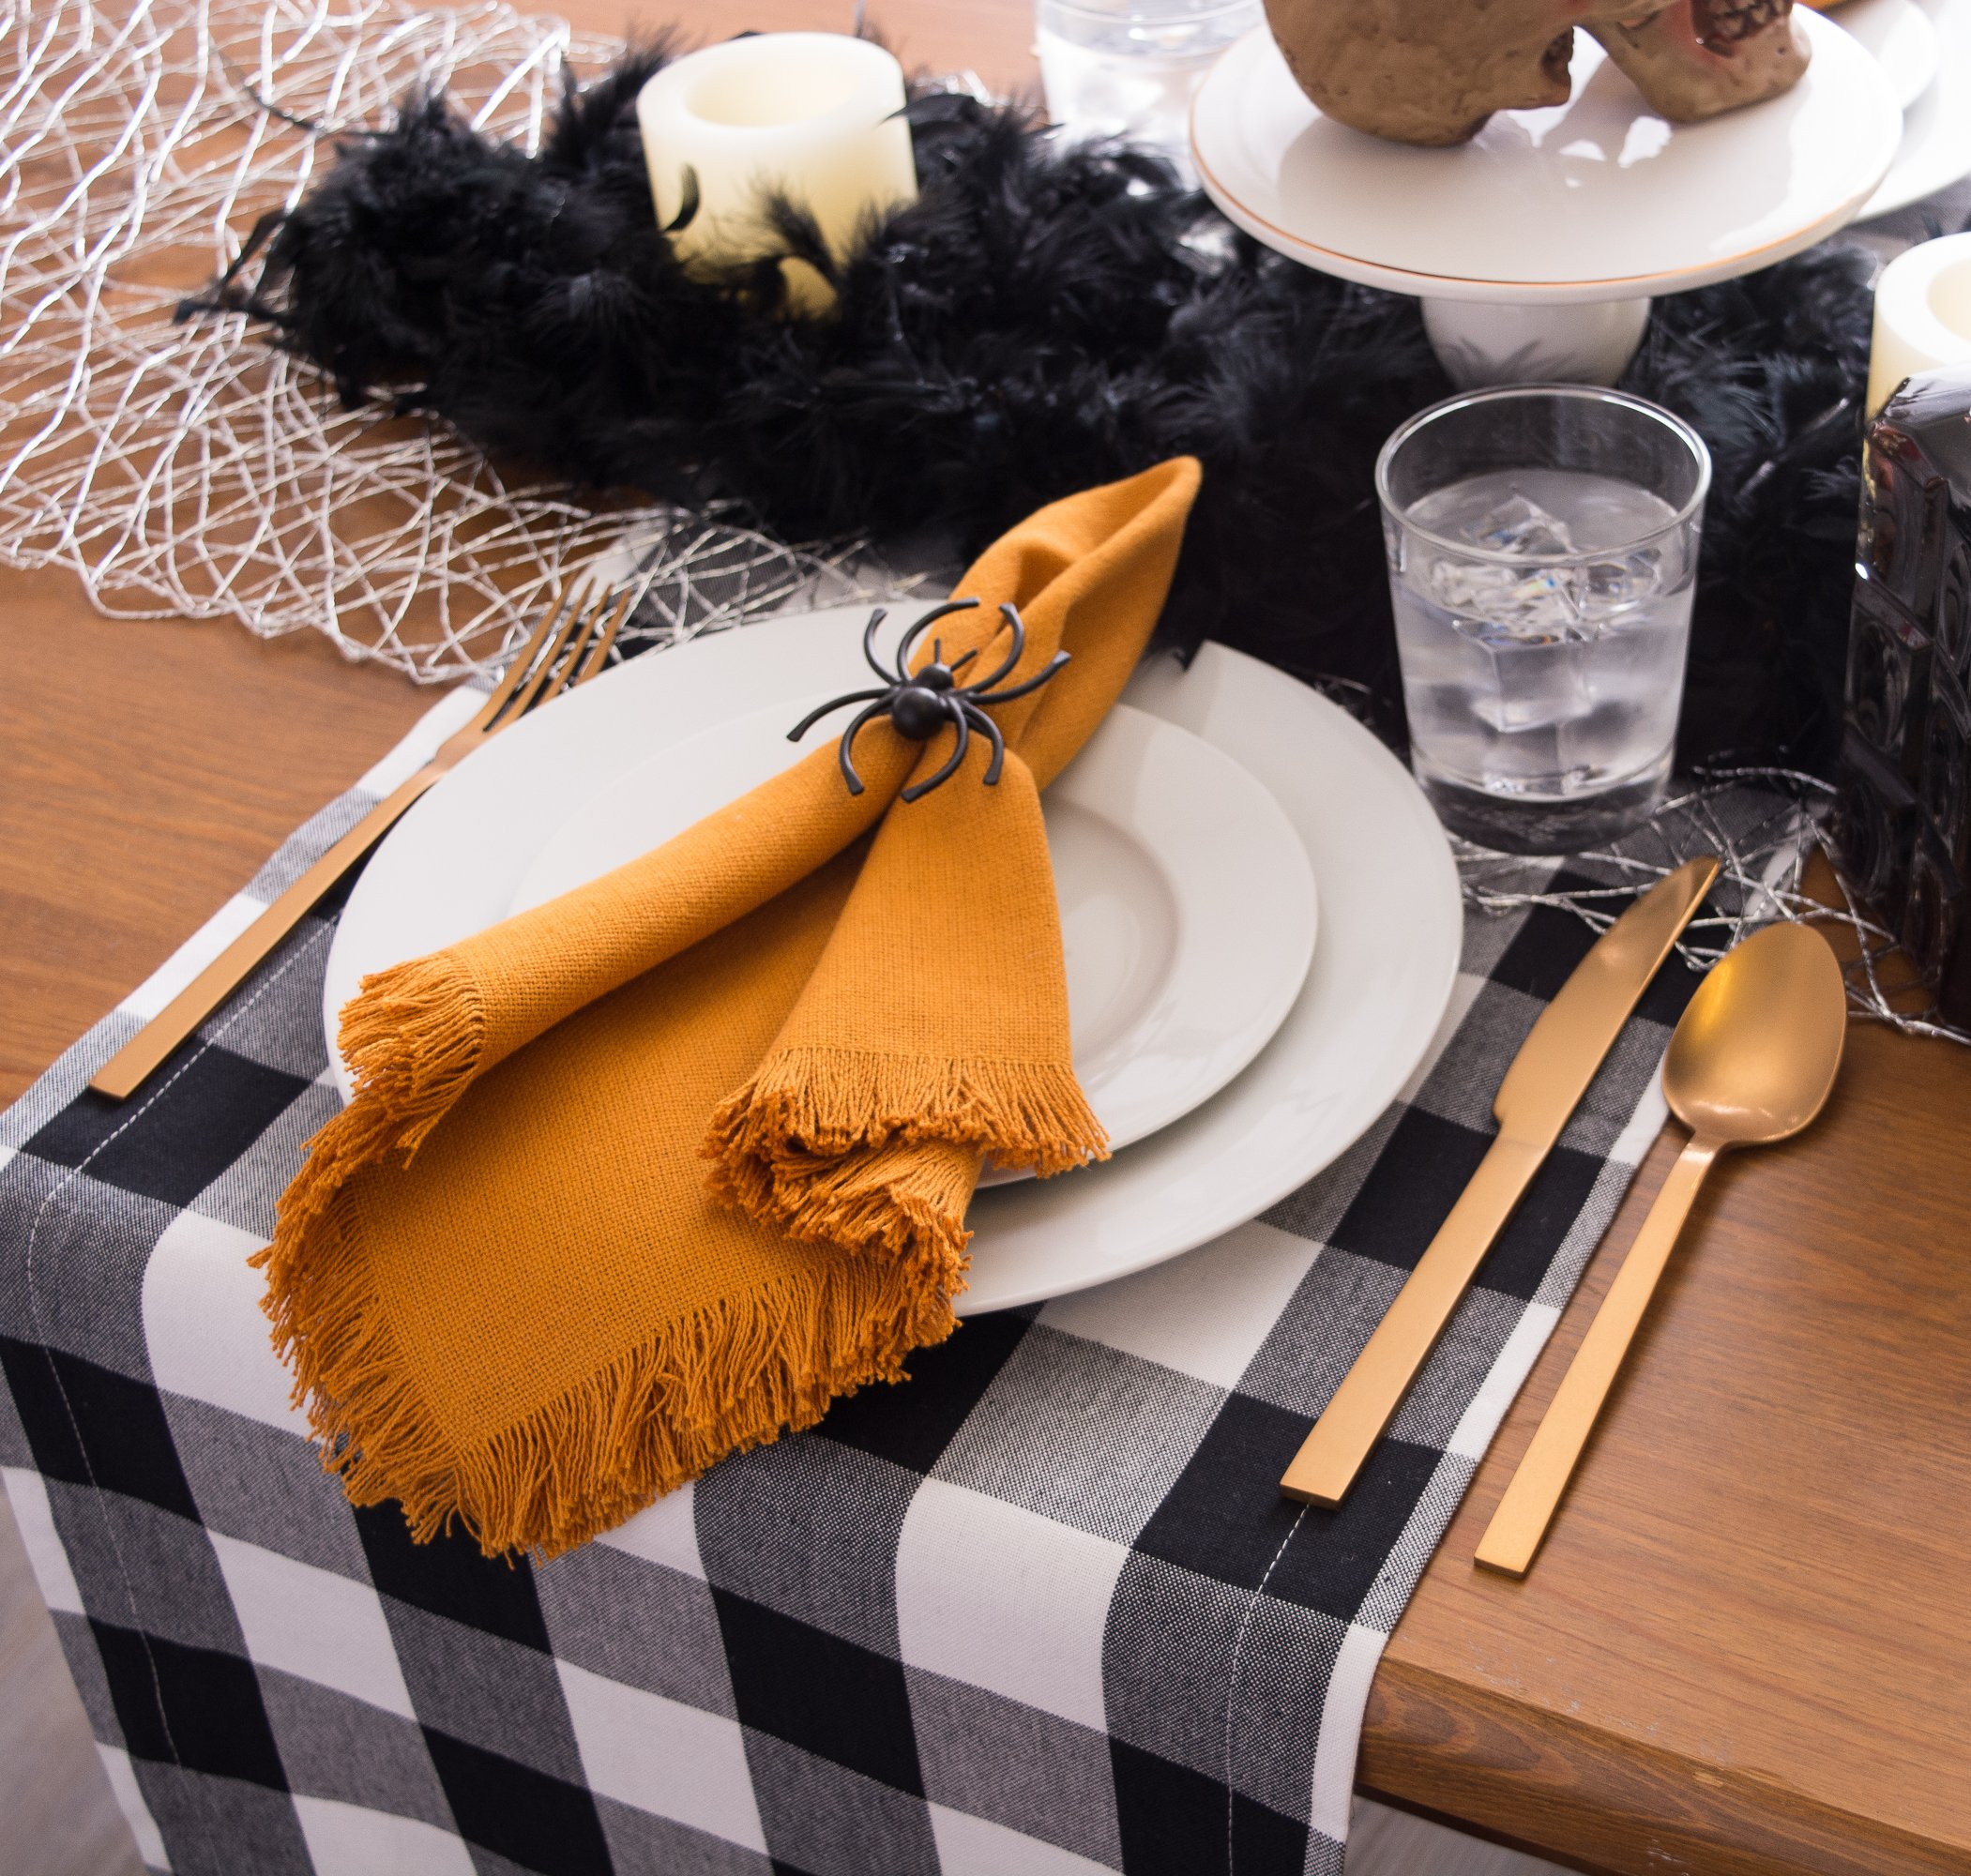 DII Cotton Buffalo Check Table Runner for Family Dinners or Gatherings, Indoor or Outdoor Parties, & Everyday Use (14x108'',  Seats 8-10 People), Black & White by DII (Image #5)